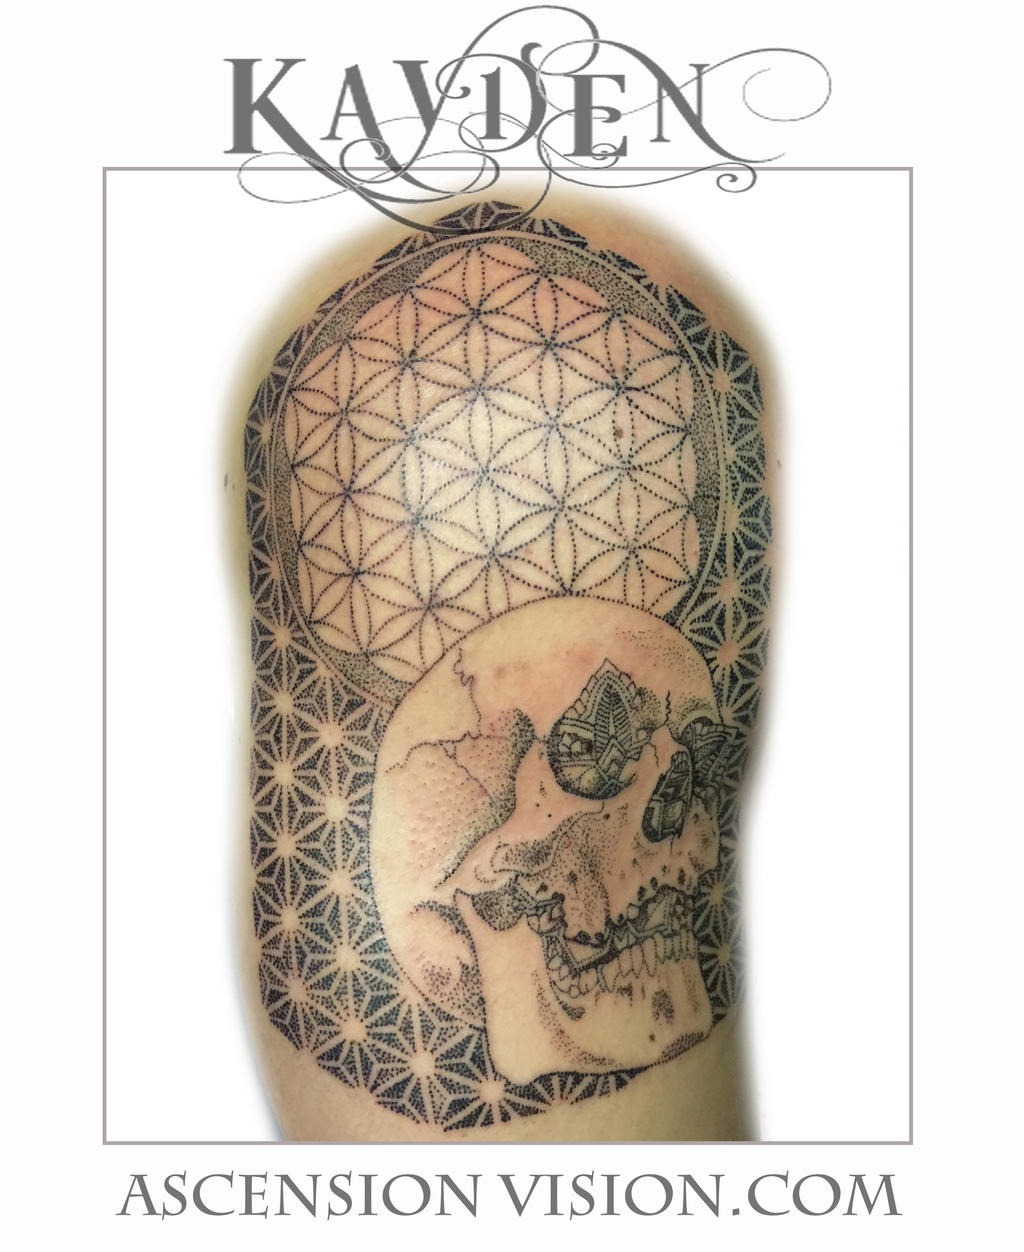 Dallas Tattoo Artist Kayden flower of life sleeve by kayden7 on DeviantArt